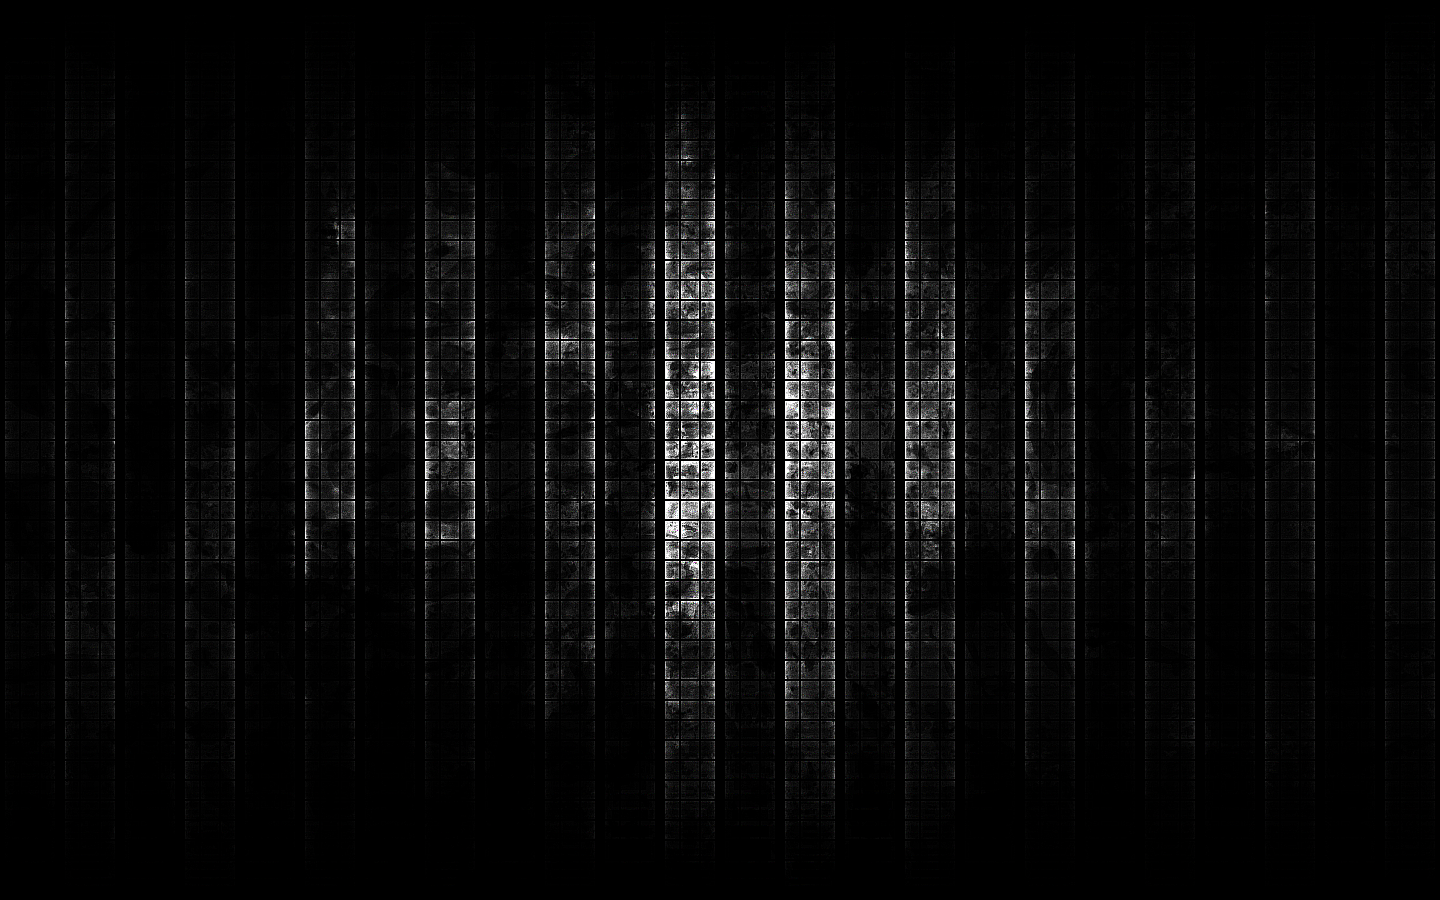 37 Hd Quality Black Images Black Wallpapers Hd Base